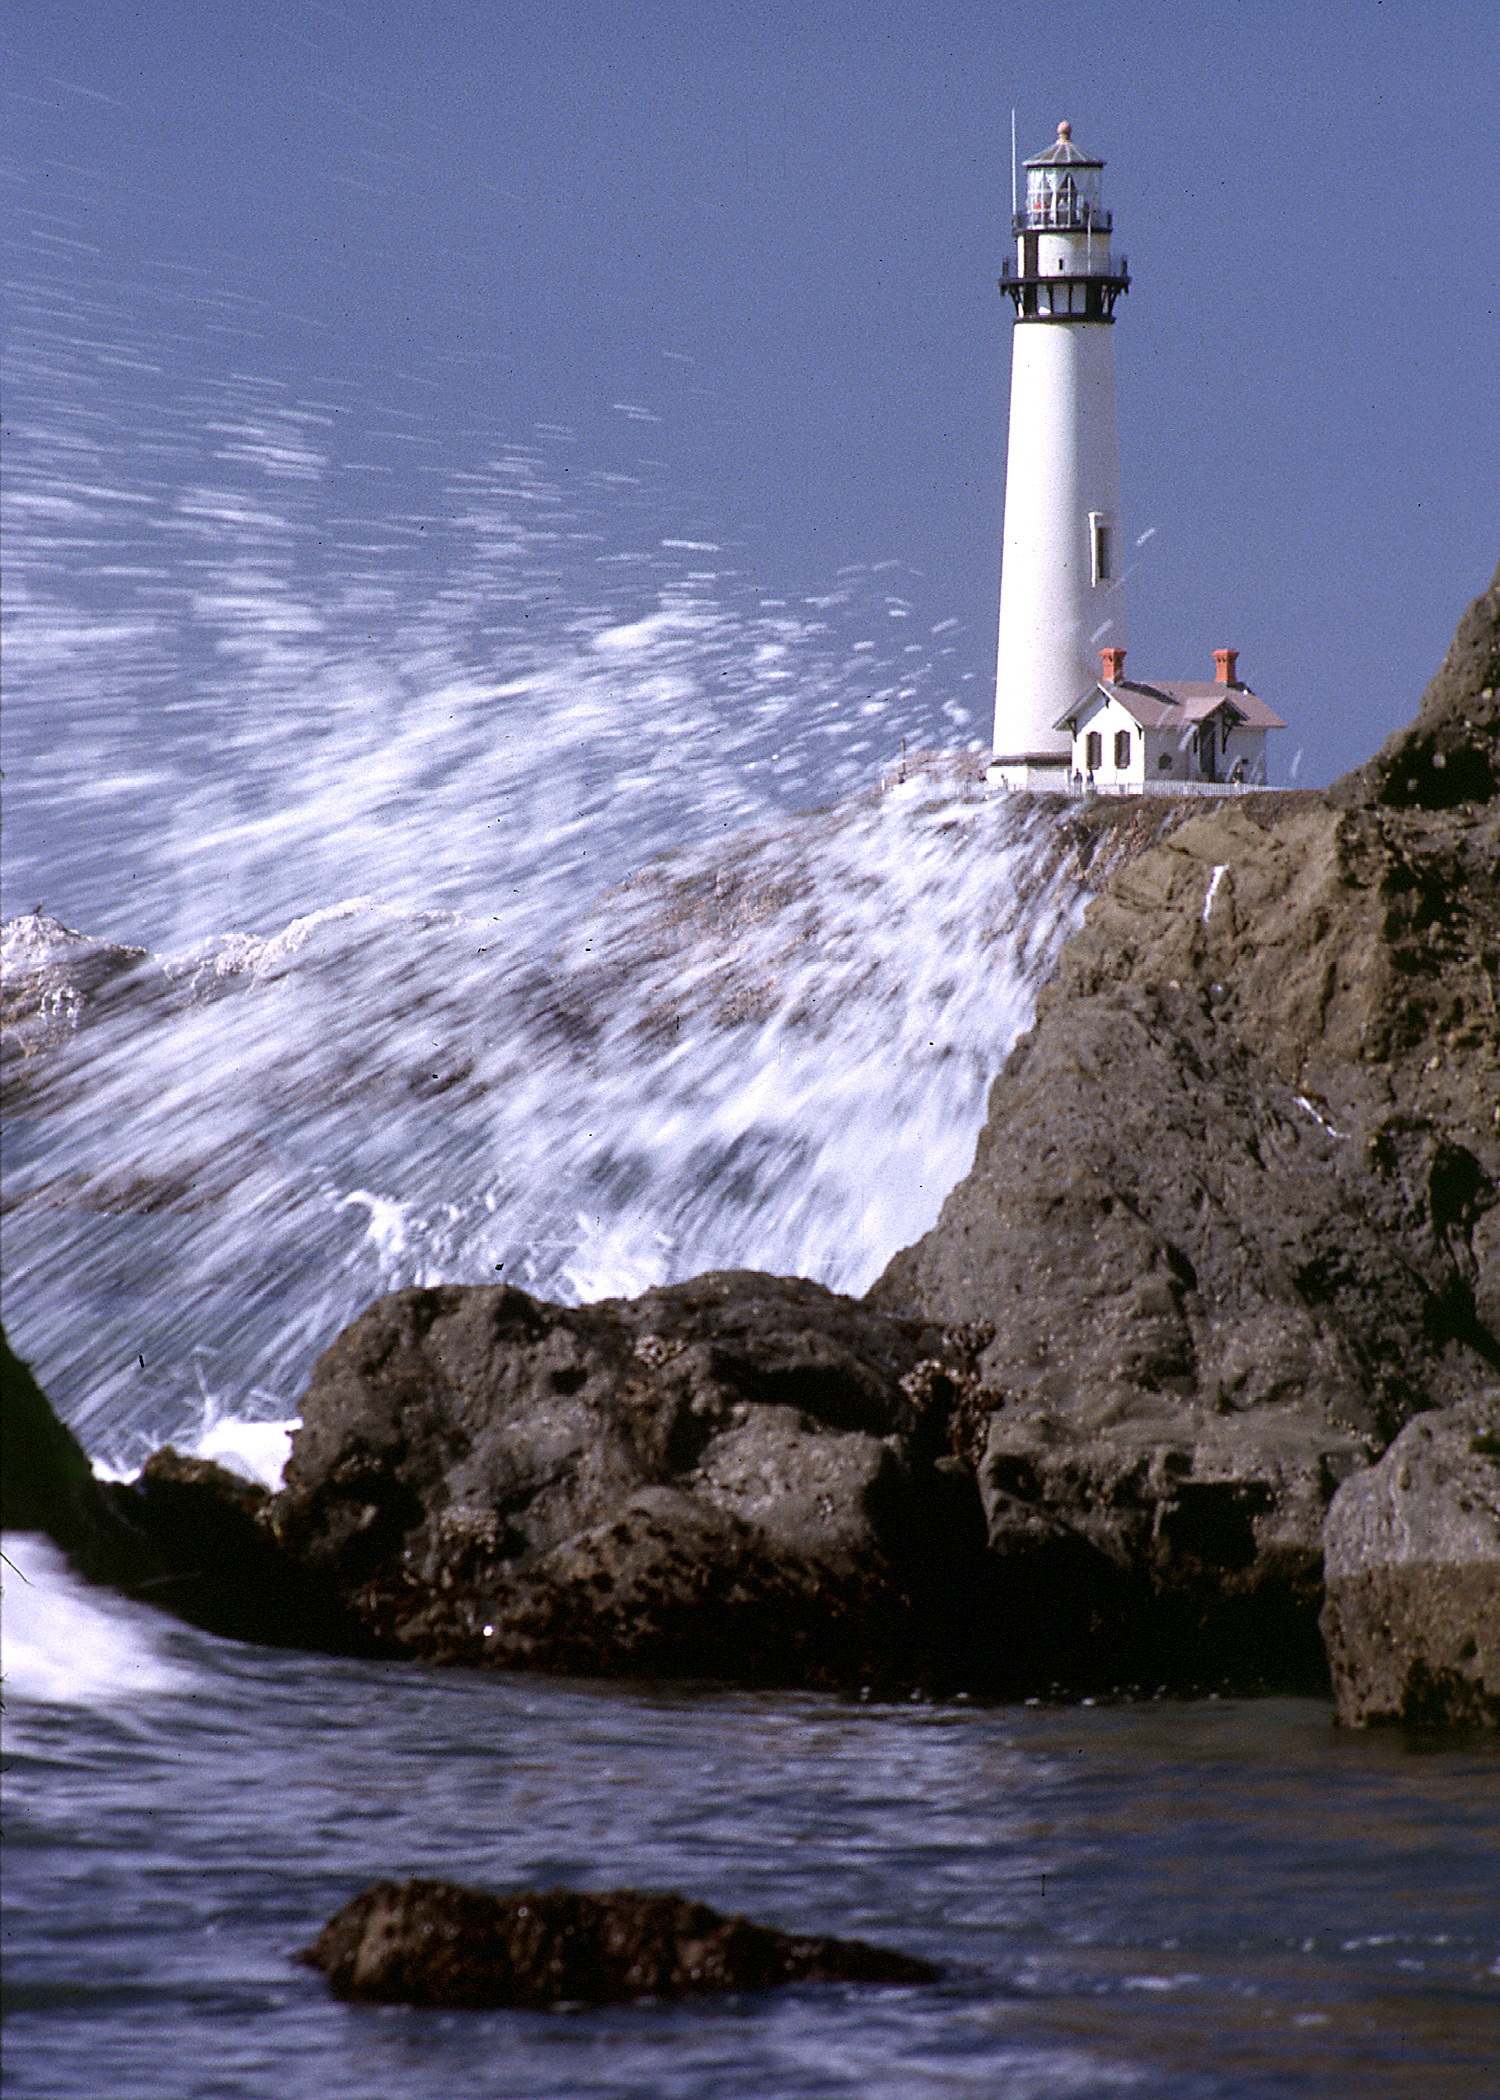 Big Splash at Lighthouse